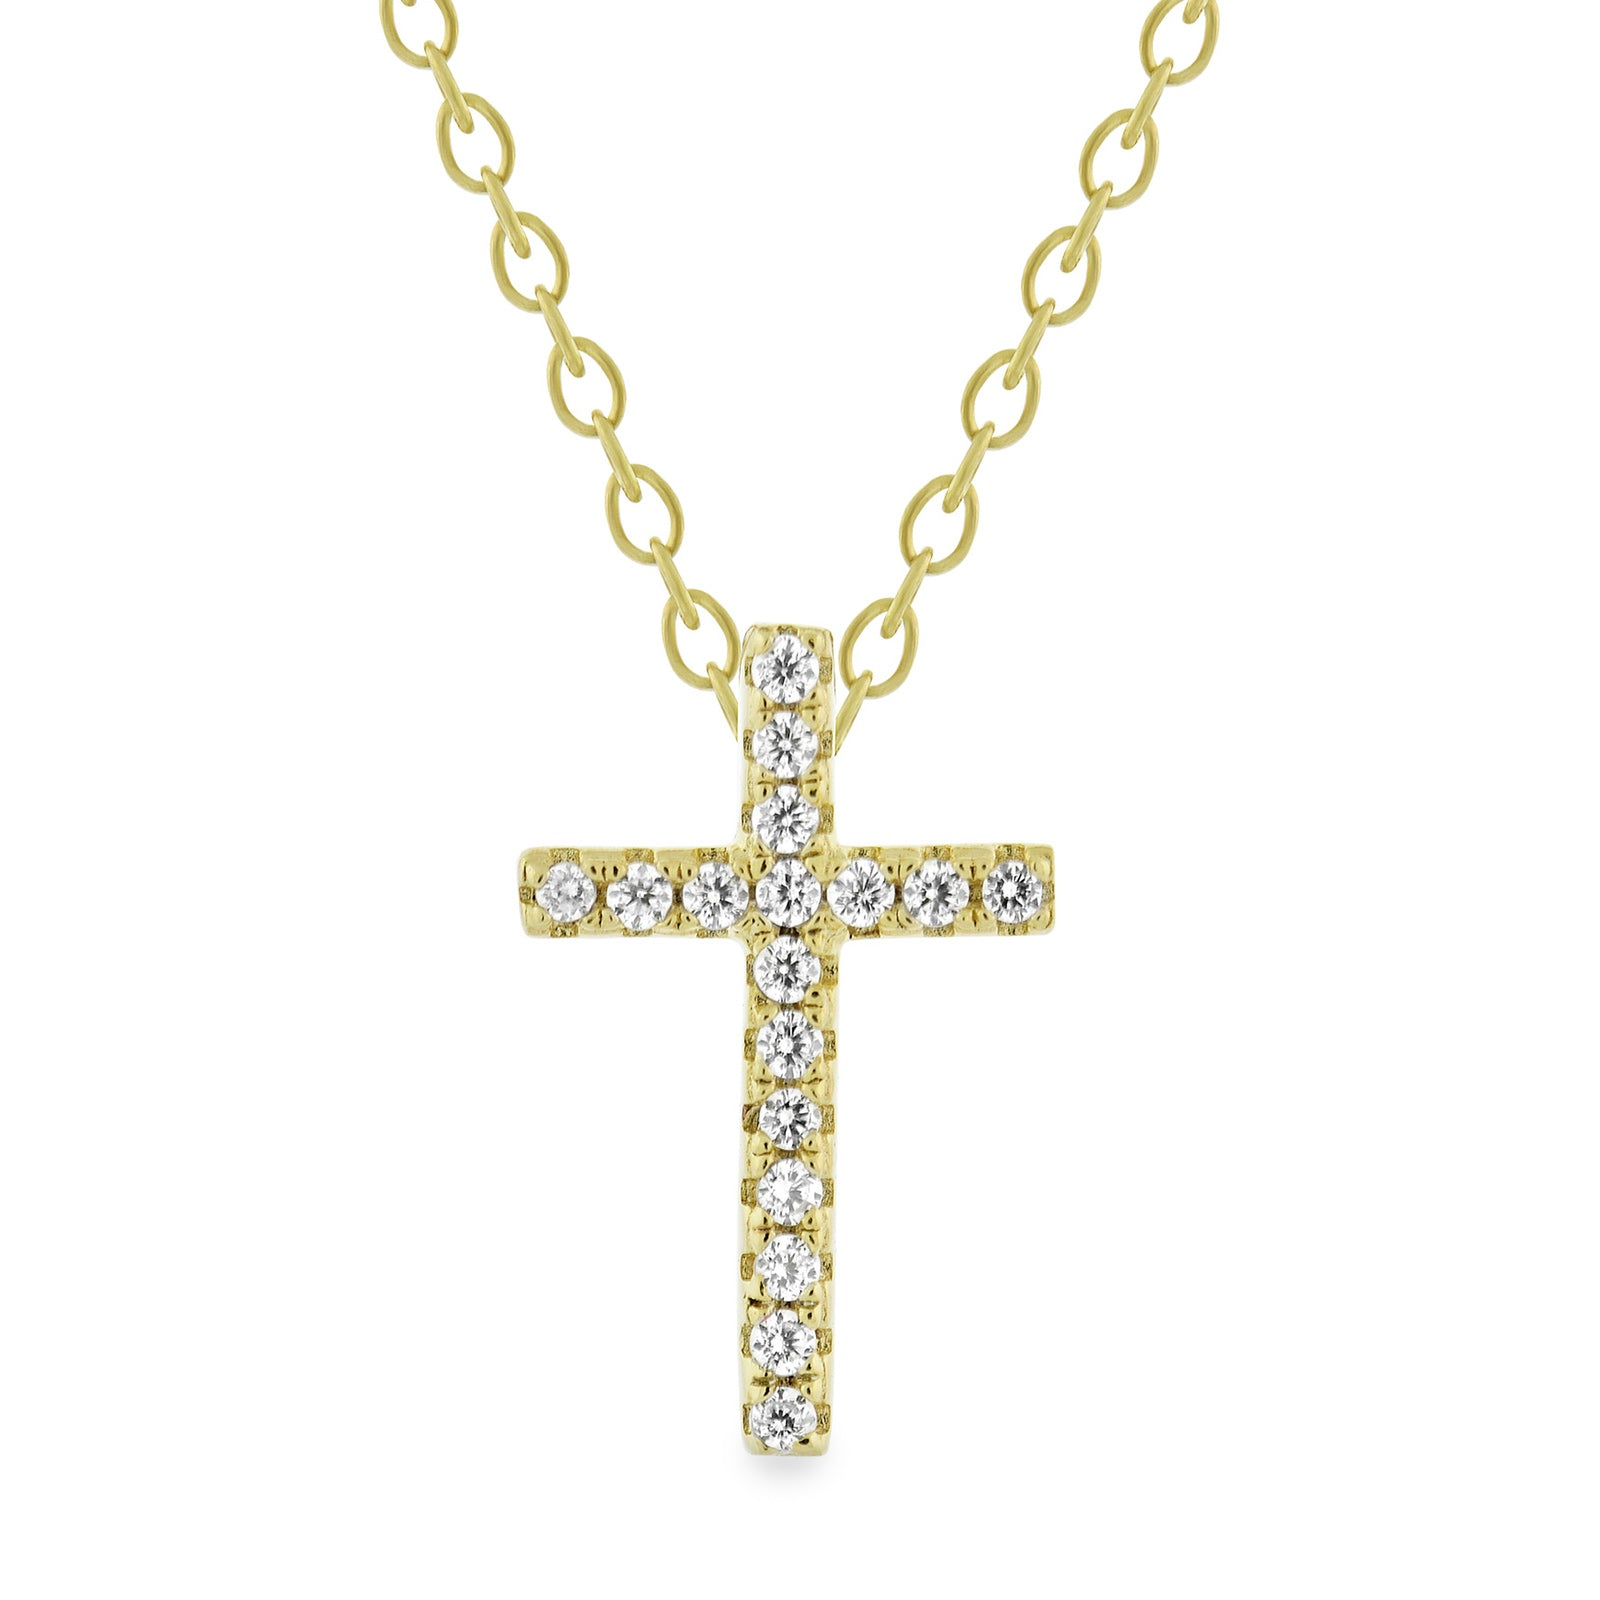 EWP120175Y-XS GP Cross Pendant Necklace